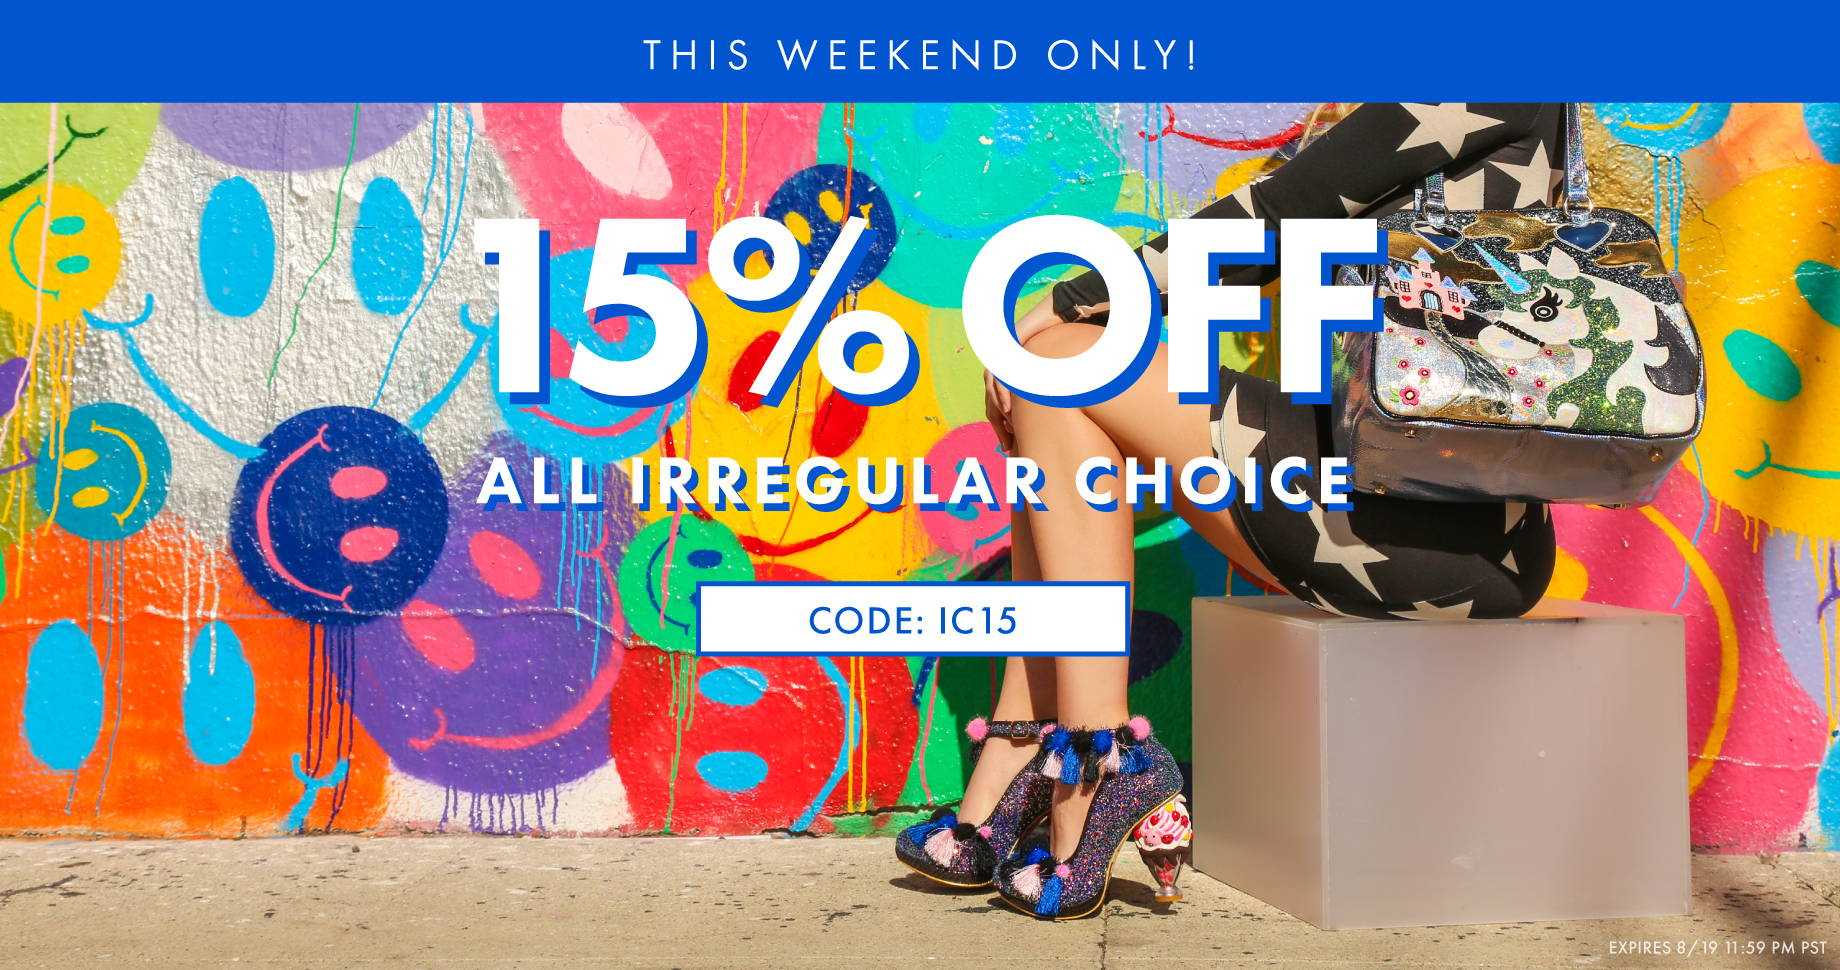 This Weekend Only! 15% off all Irregular Choice.  CODE: IC15